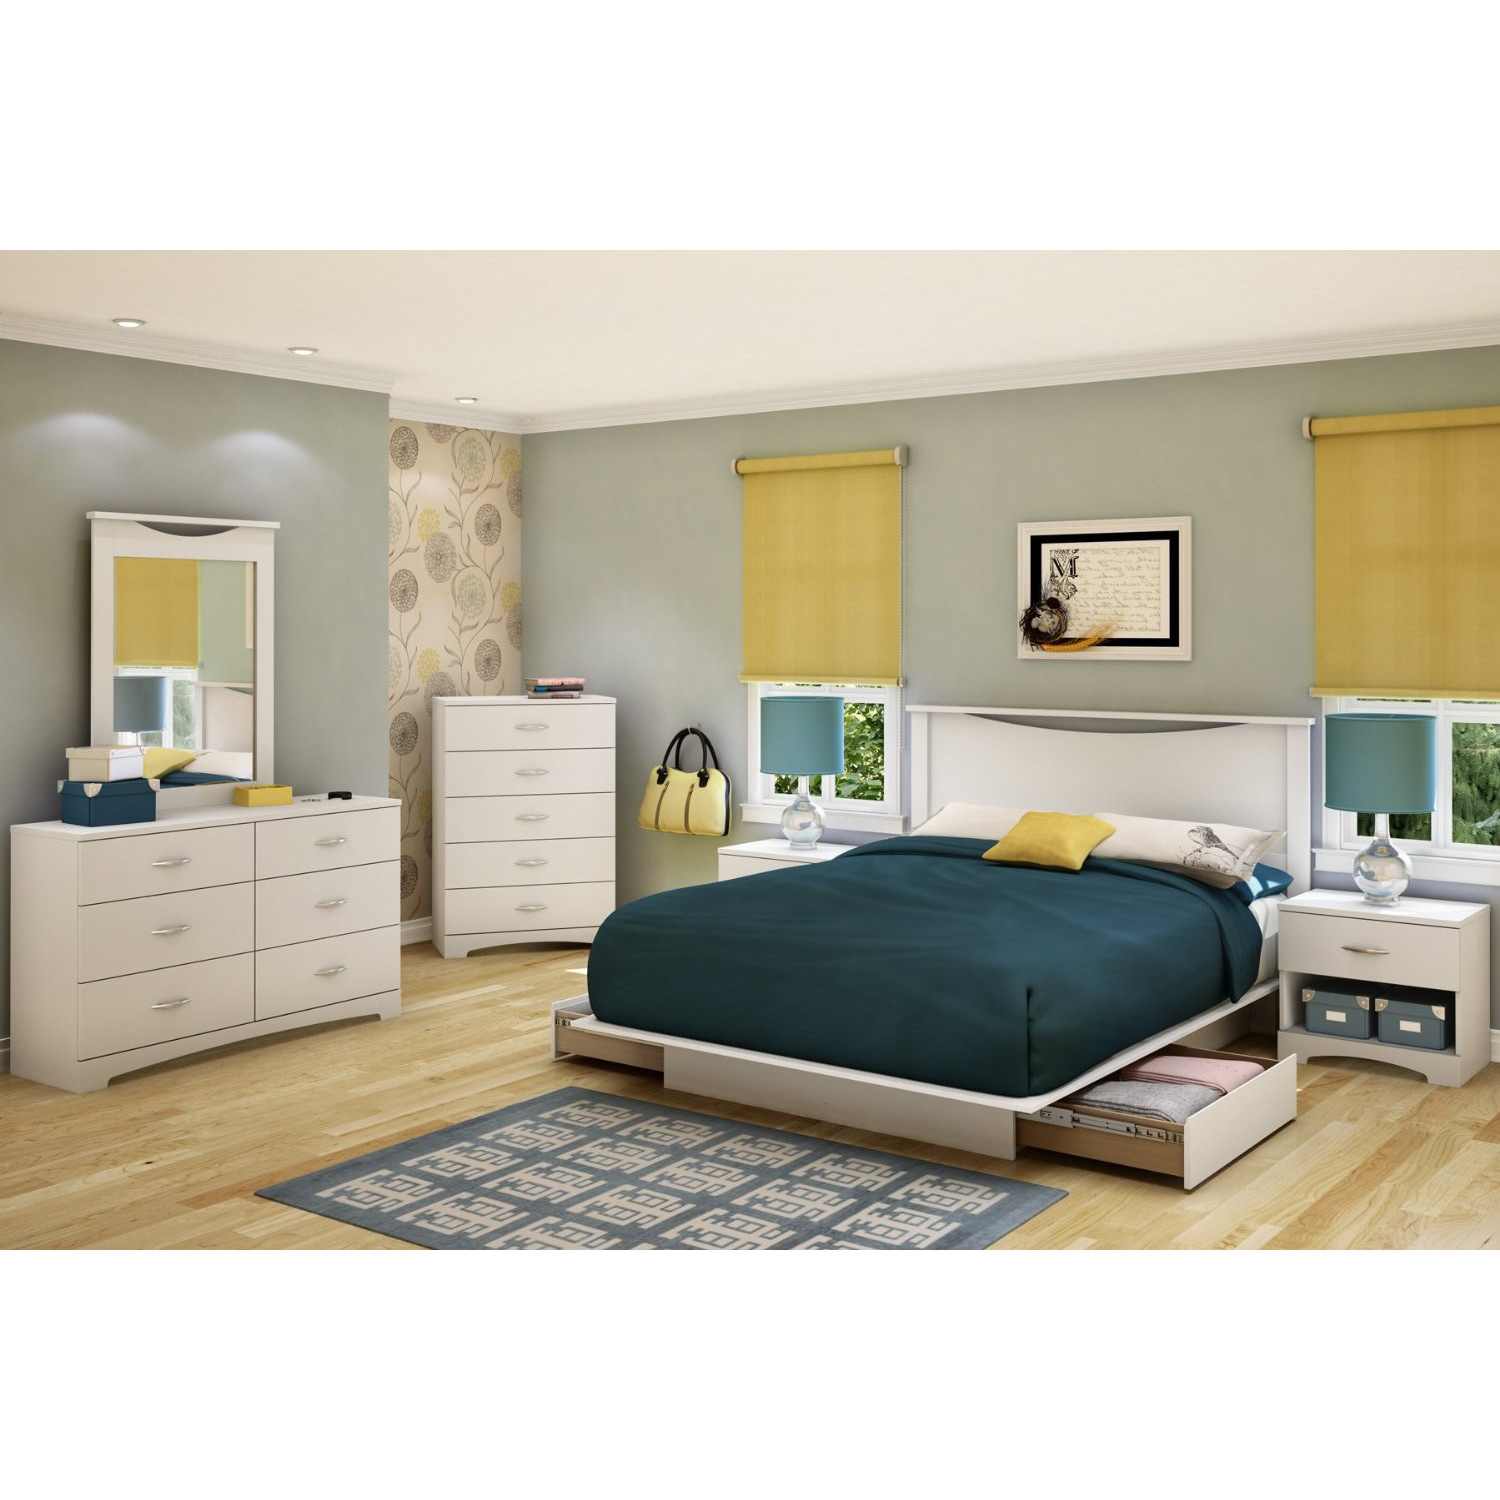 frame single design storage drawers with queen platform bedroom x intended ac raised upholstered full measurements king frames bed and for mattress white features drawer